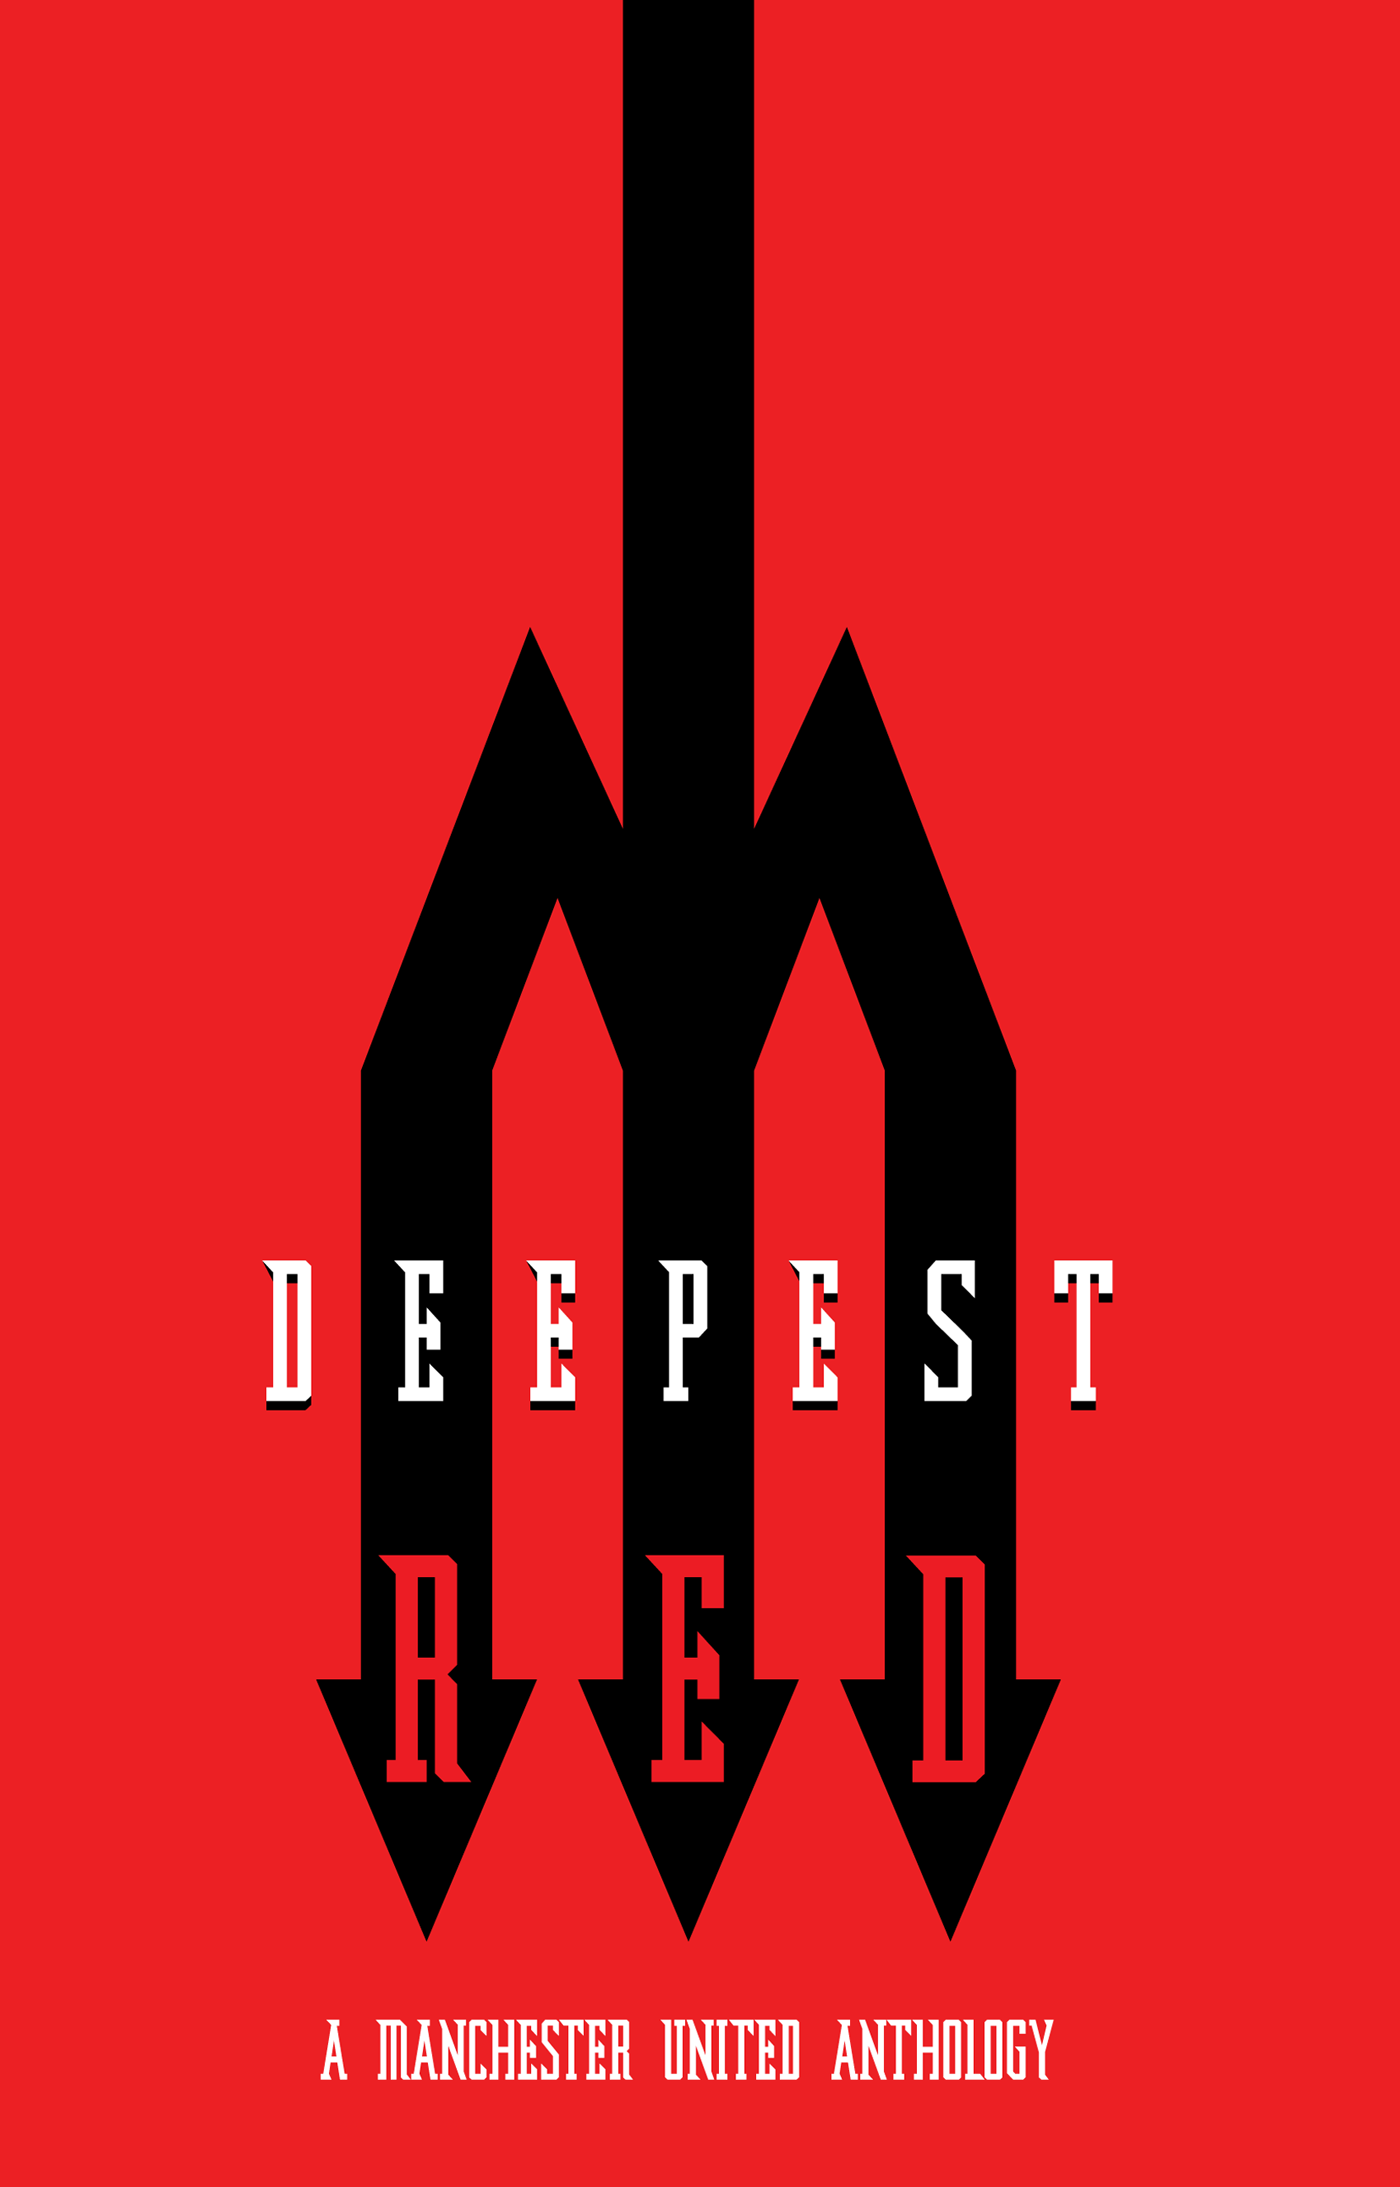 Deepest Red